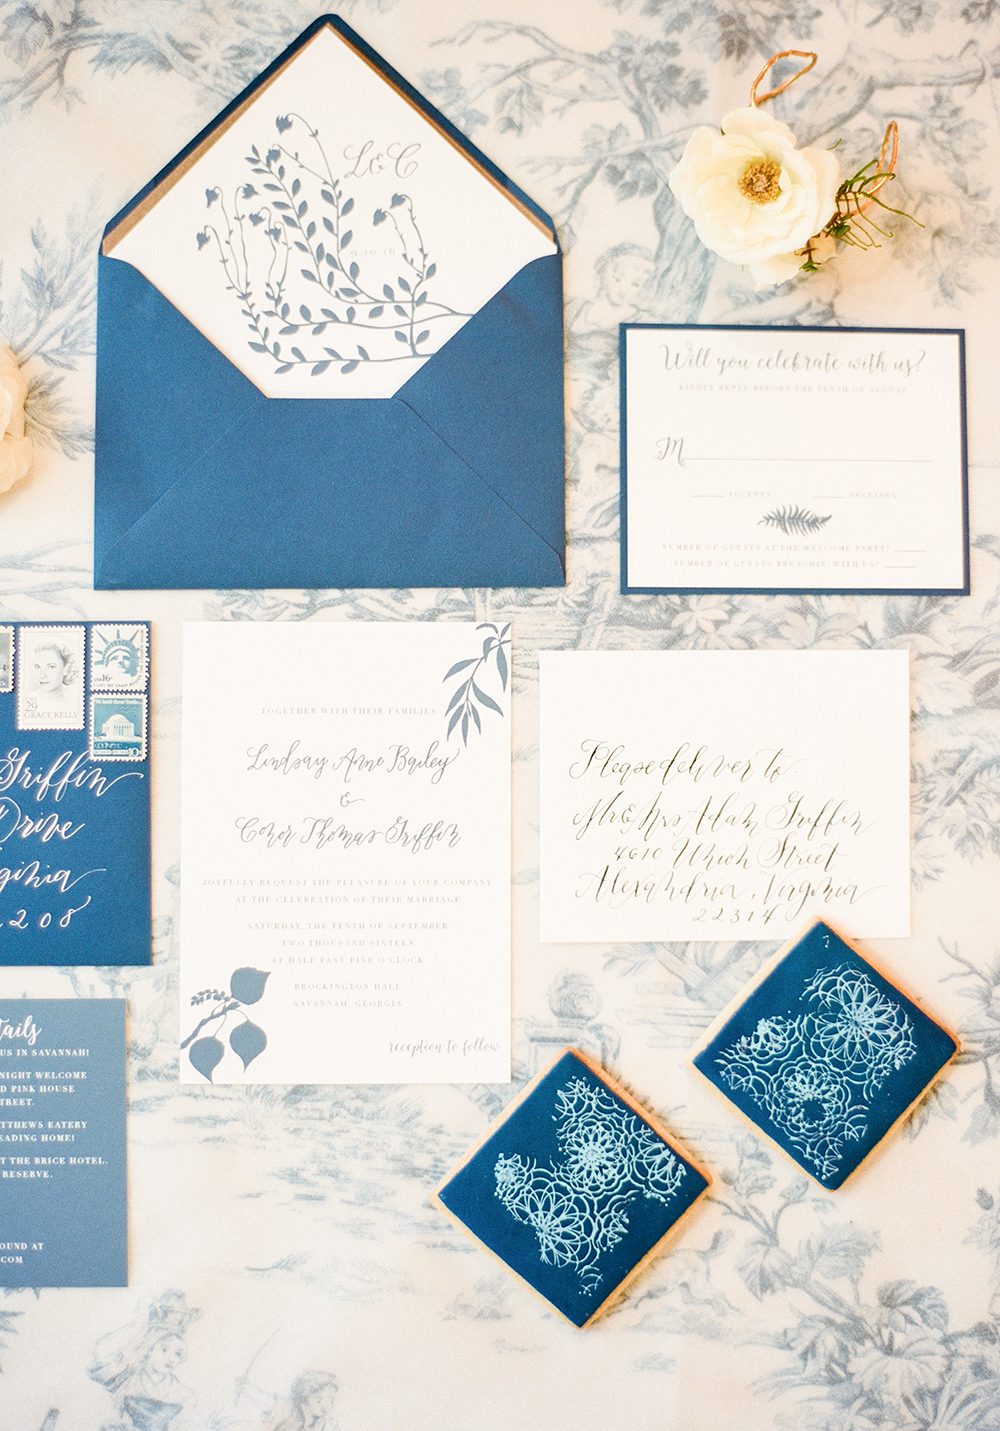 toile inspired wedding invitations - photo by Lisa Blume Photography http://ruffledblog.com/cyanotype-inspired-wedding-ideas